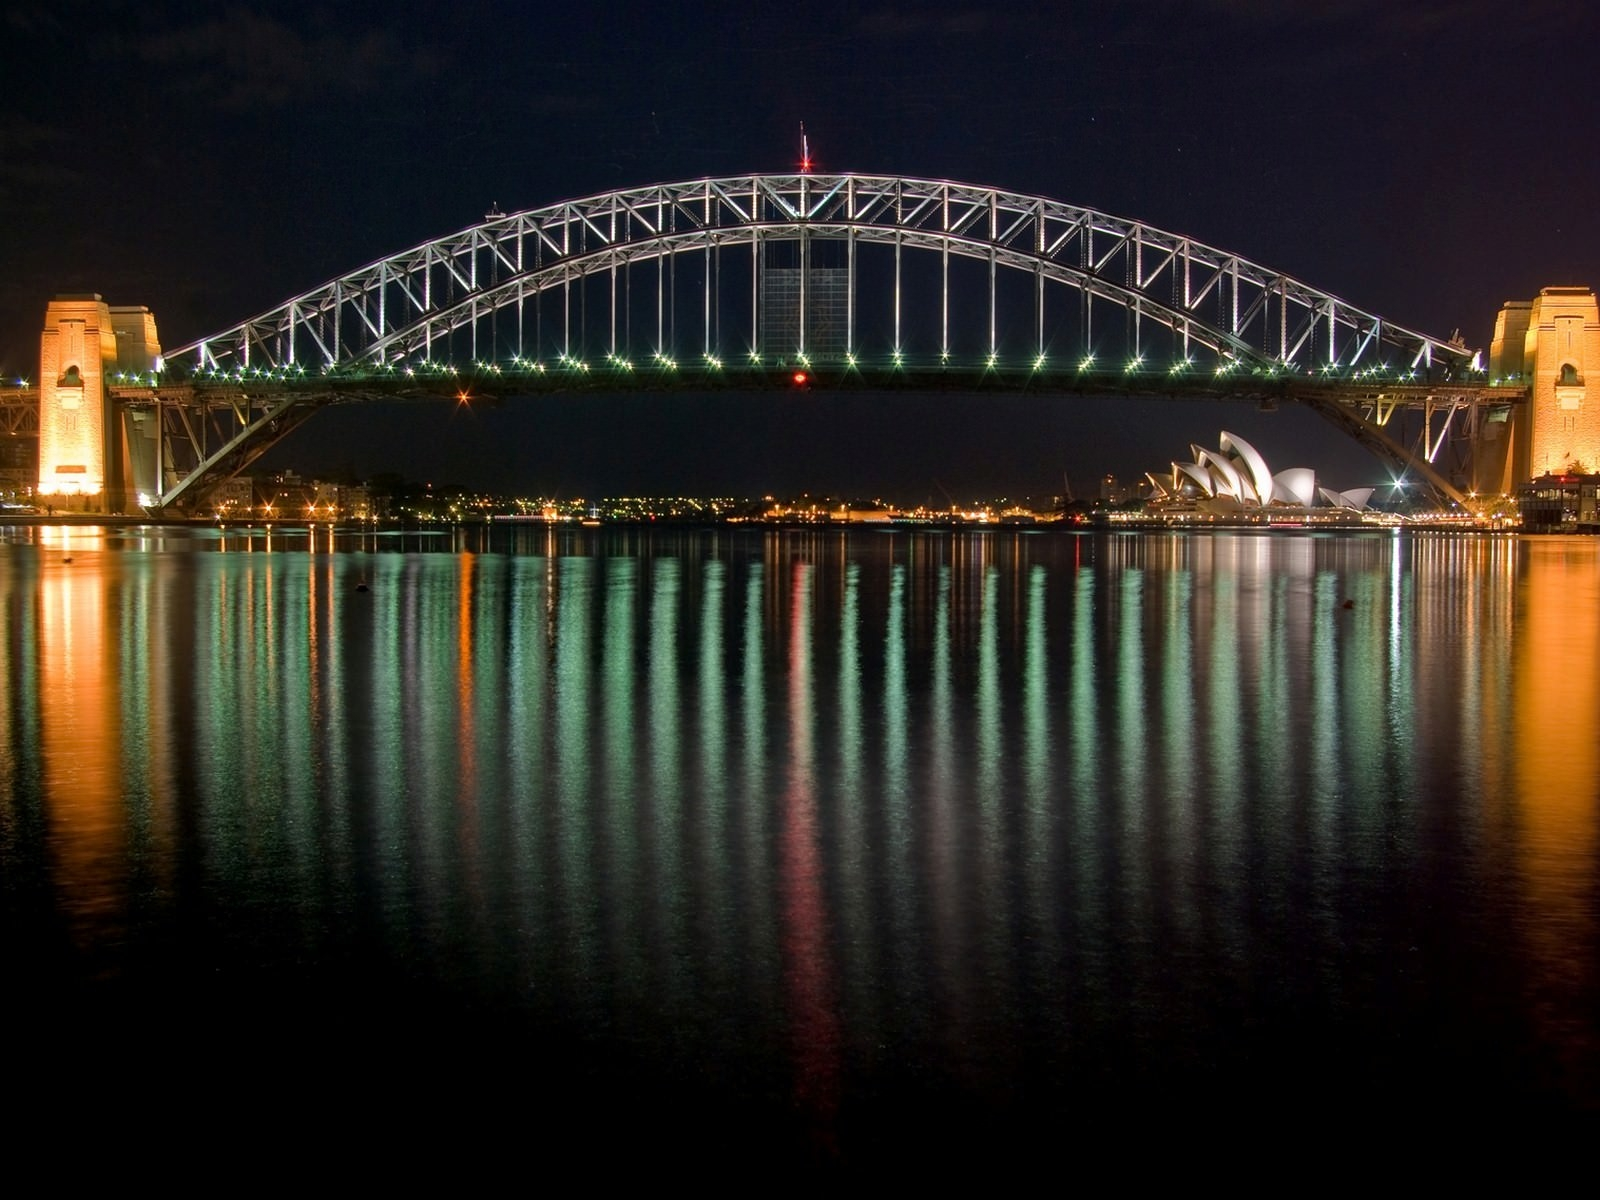 Sydney Harbour Bridge in Australia Wallpaper